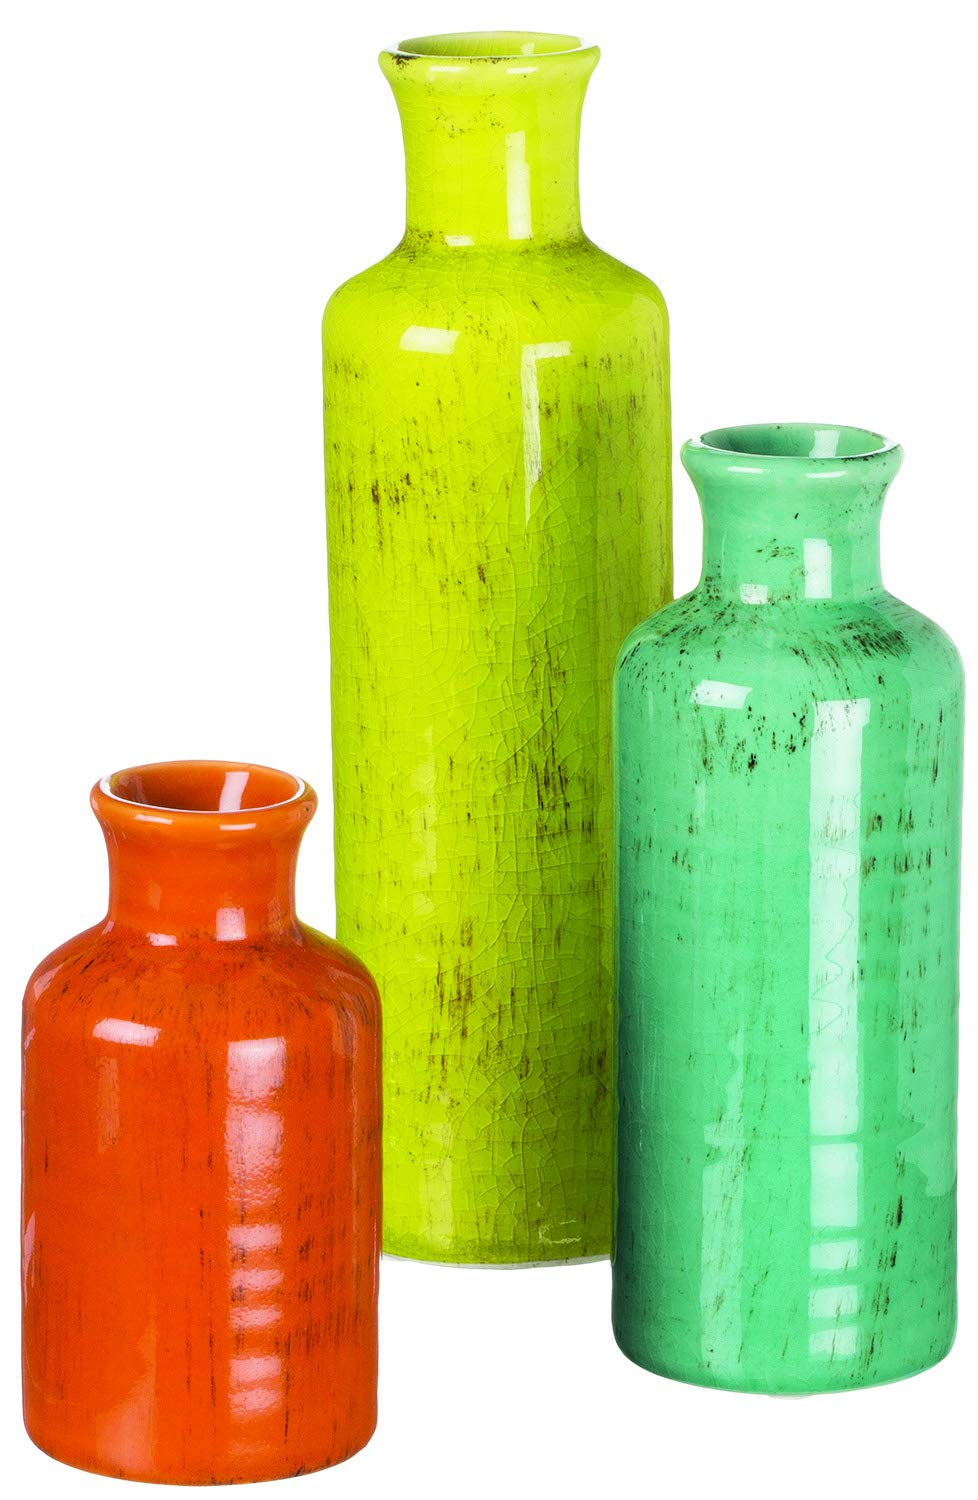 TenWaterloo Set of 3 Decorative Crackled Vases in Orange, Green, and Blue